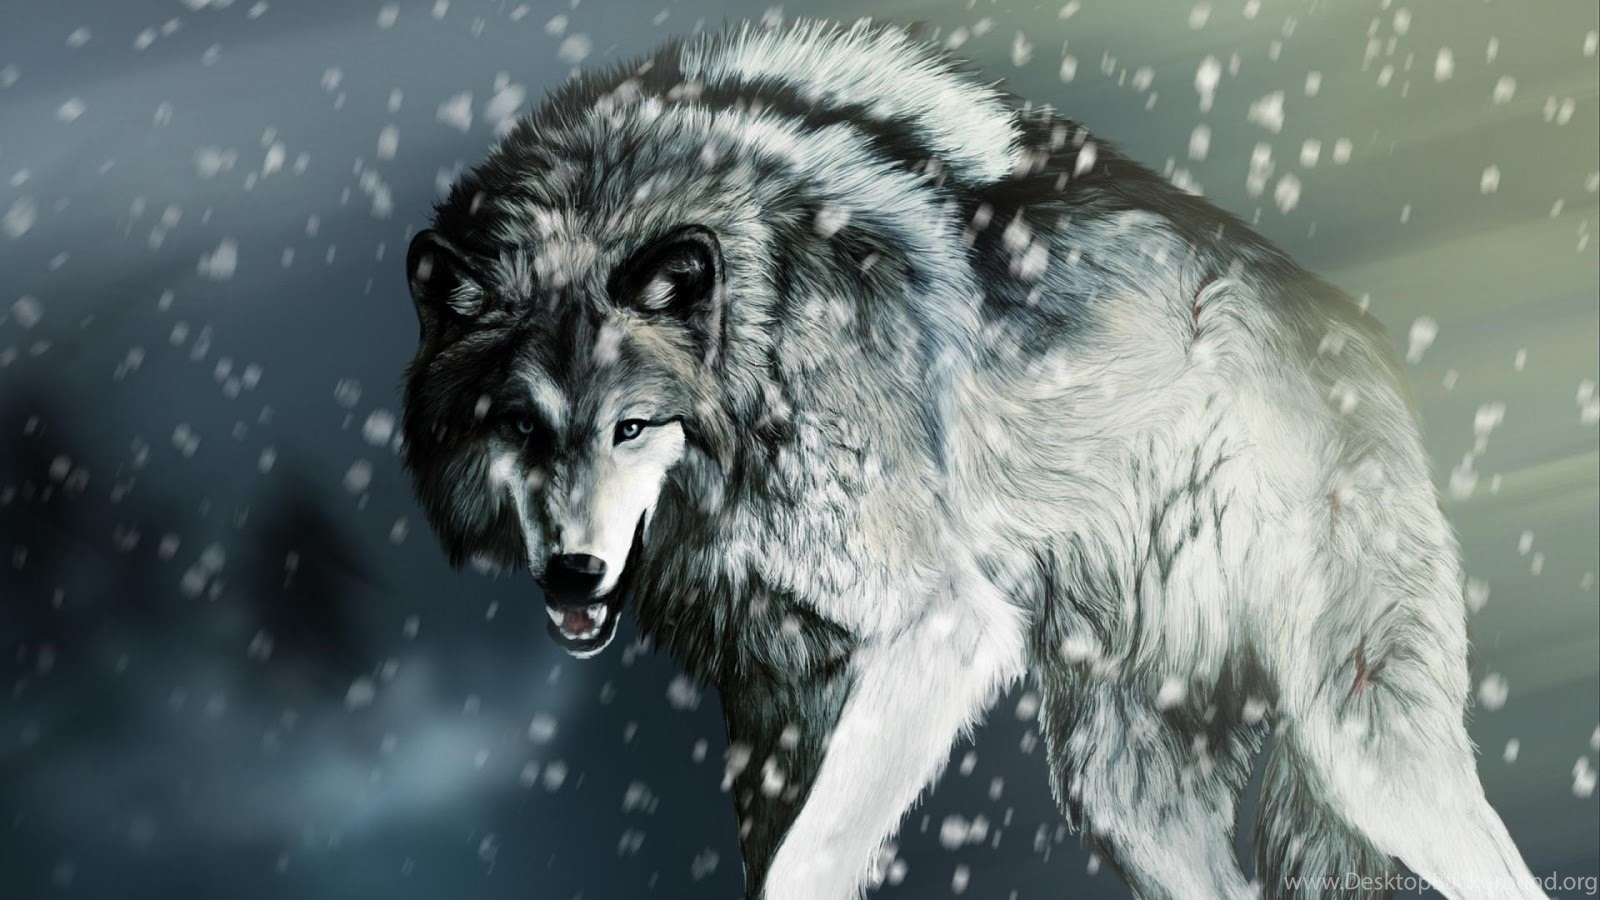 Wolf Pack 2 Hd Live Wallpapers Android Apps On Google Play Desktop Background